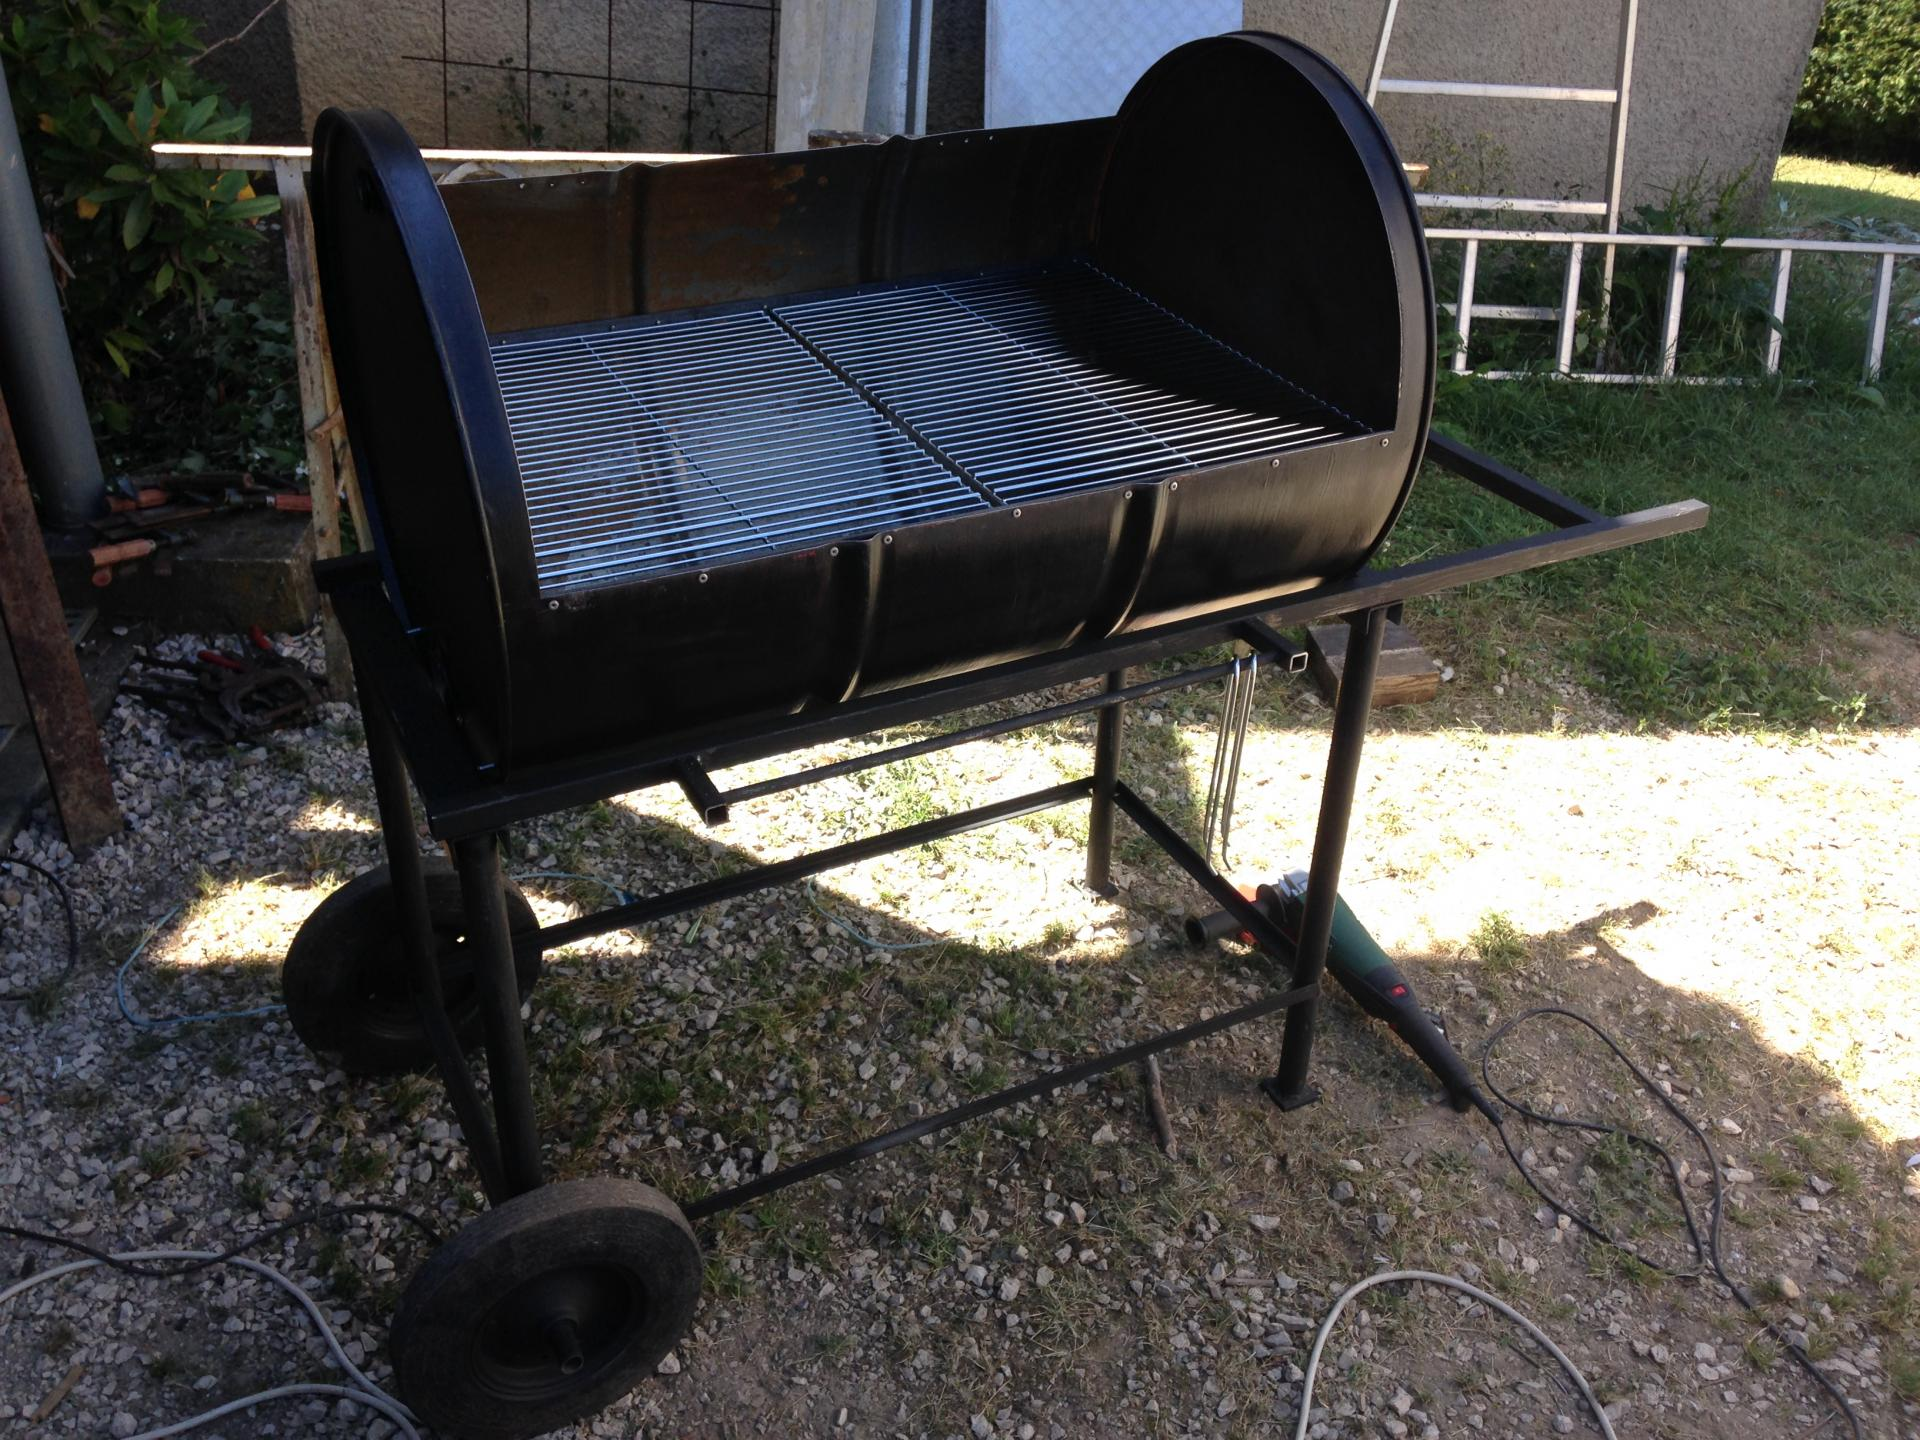 fabrication dun barbecue. Black Bedroom Furniture Sets. Home Design Ideas